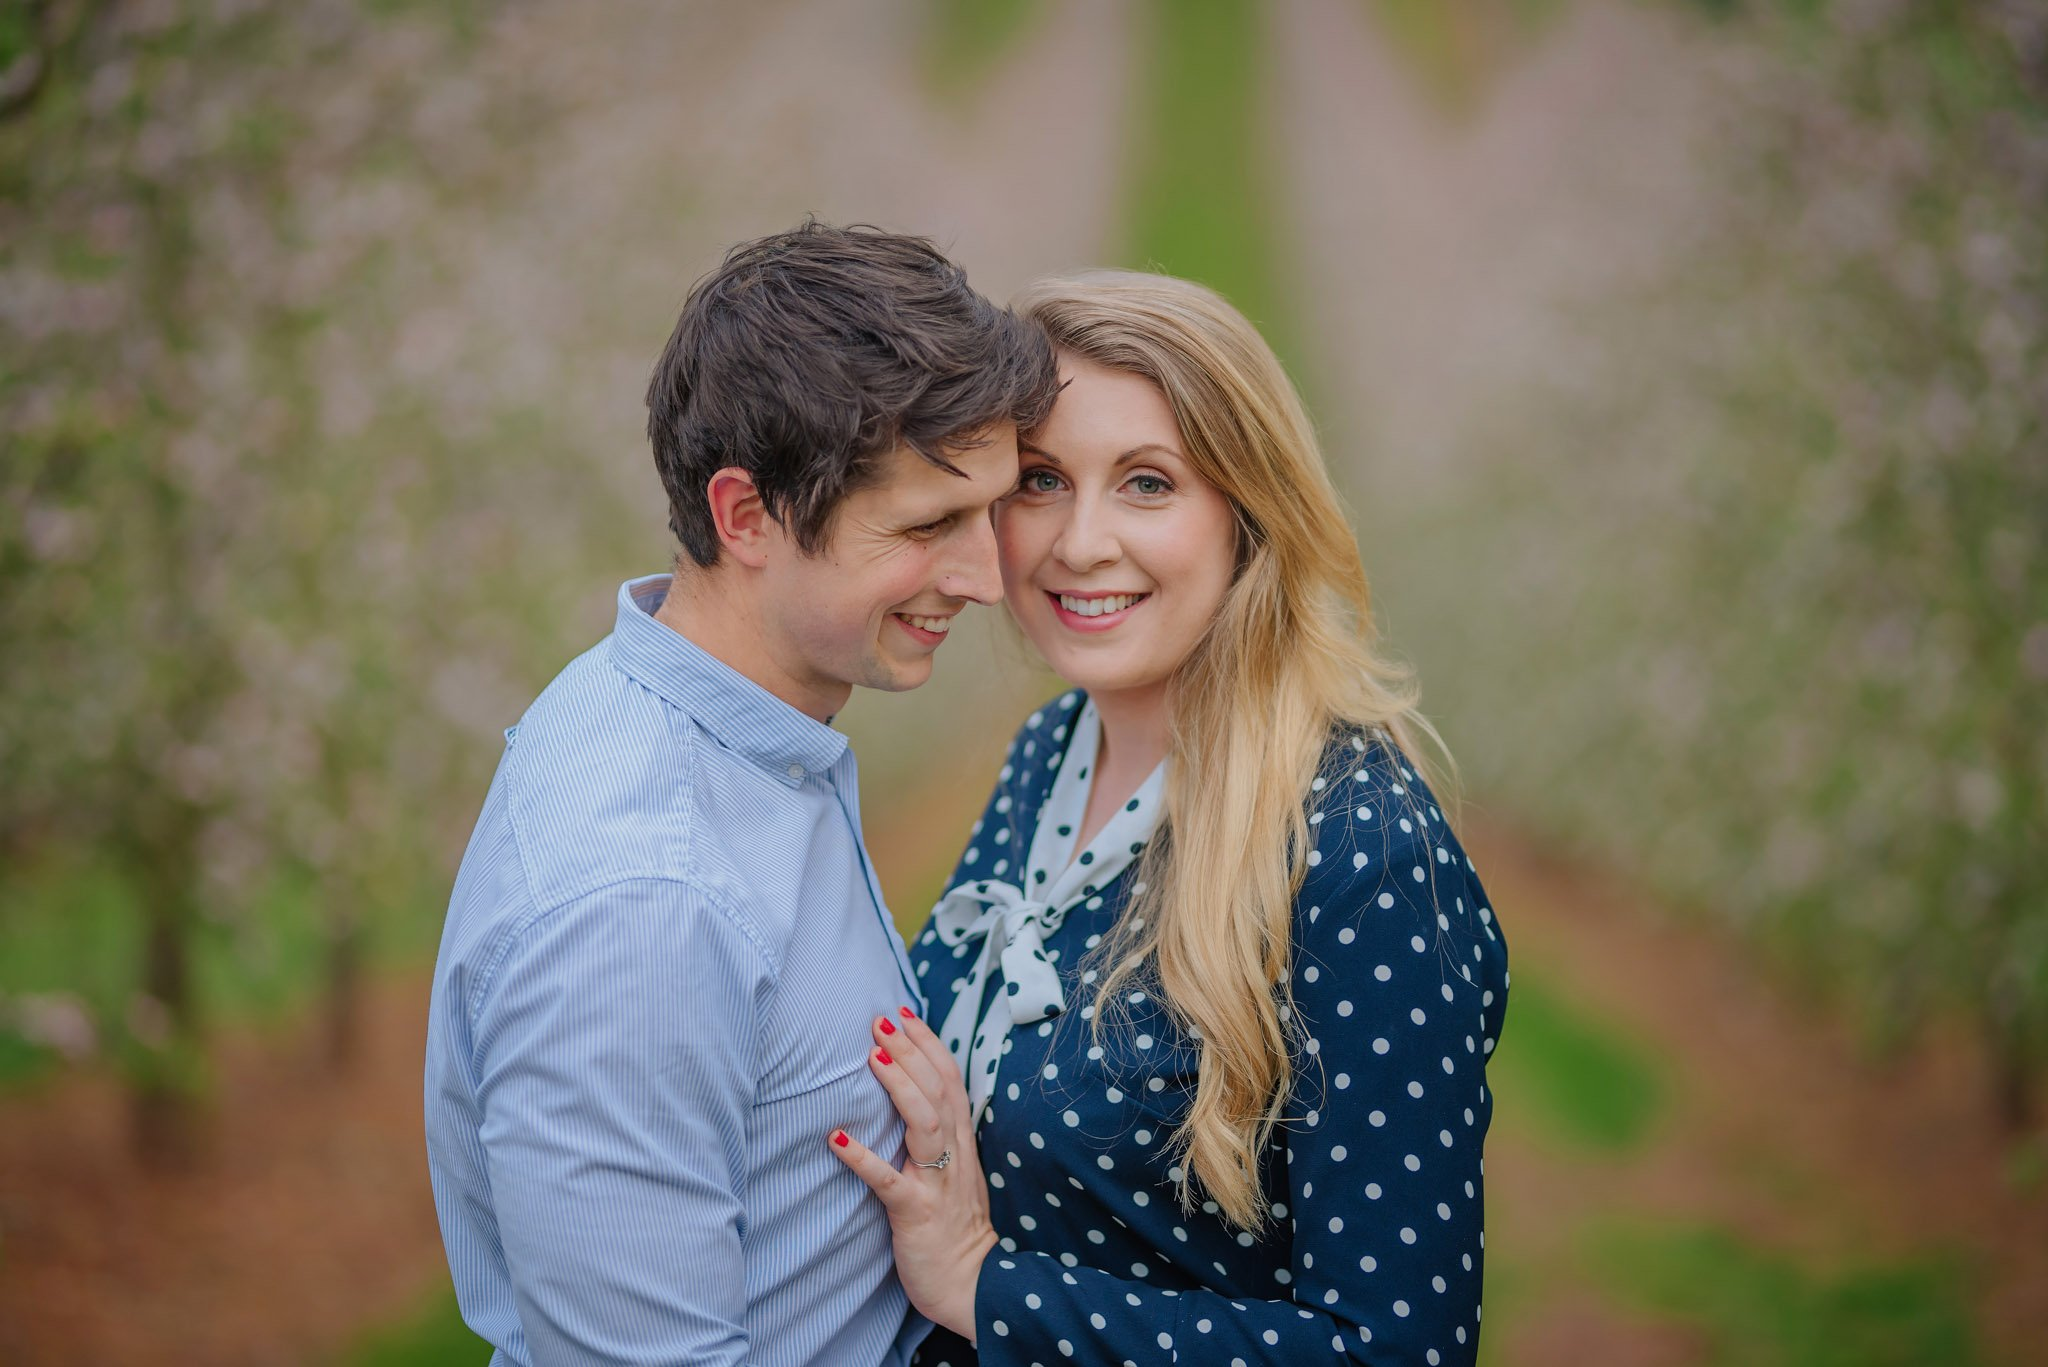 engagement-photography-in-herefordshire-west-midlands (17)